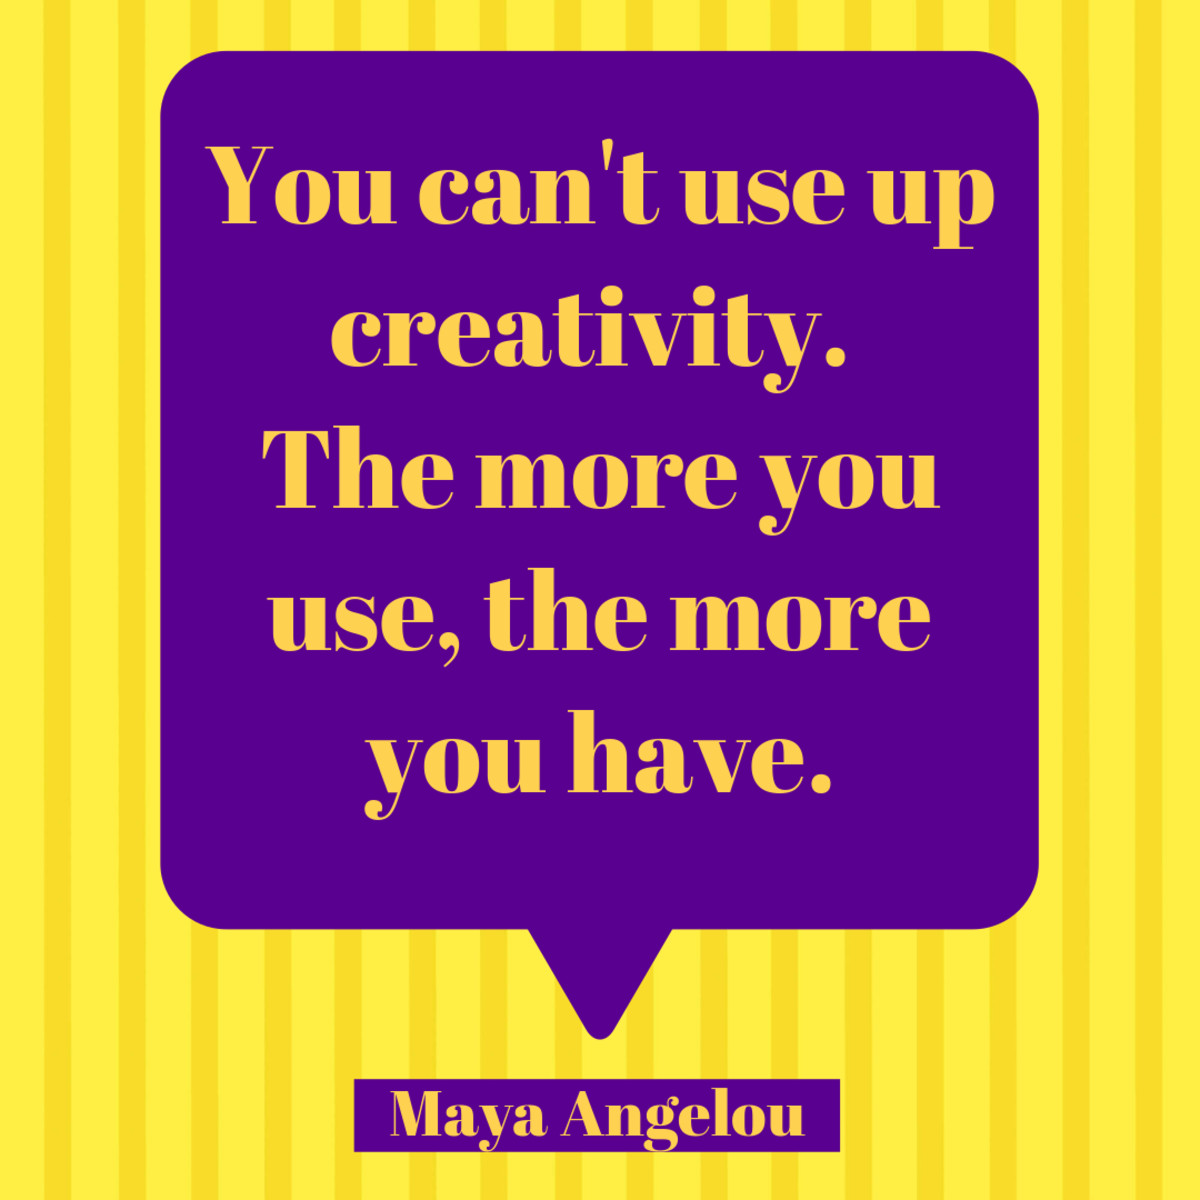 Creativity Quote: You can't use up creativity. The more you use, the more you have. Maya Angelou.